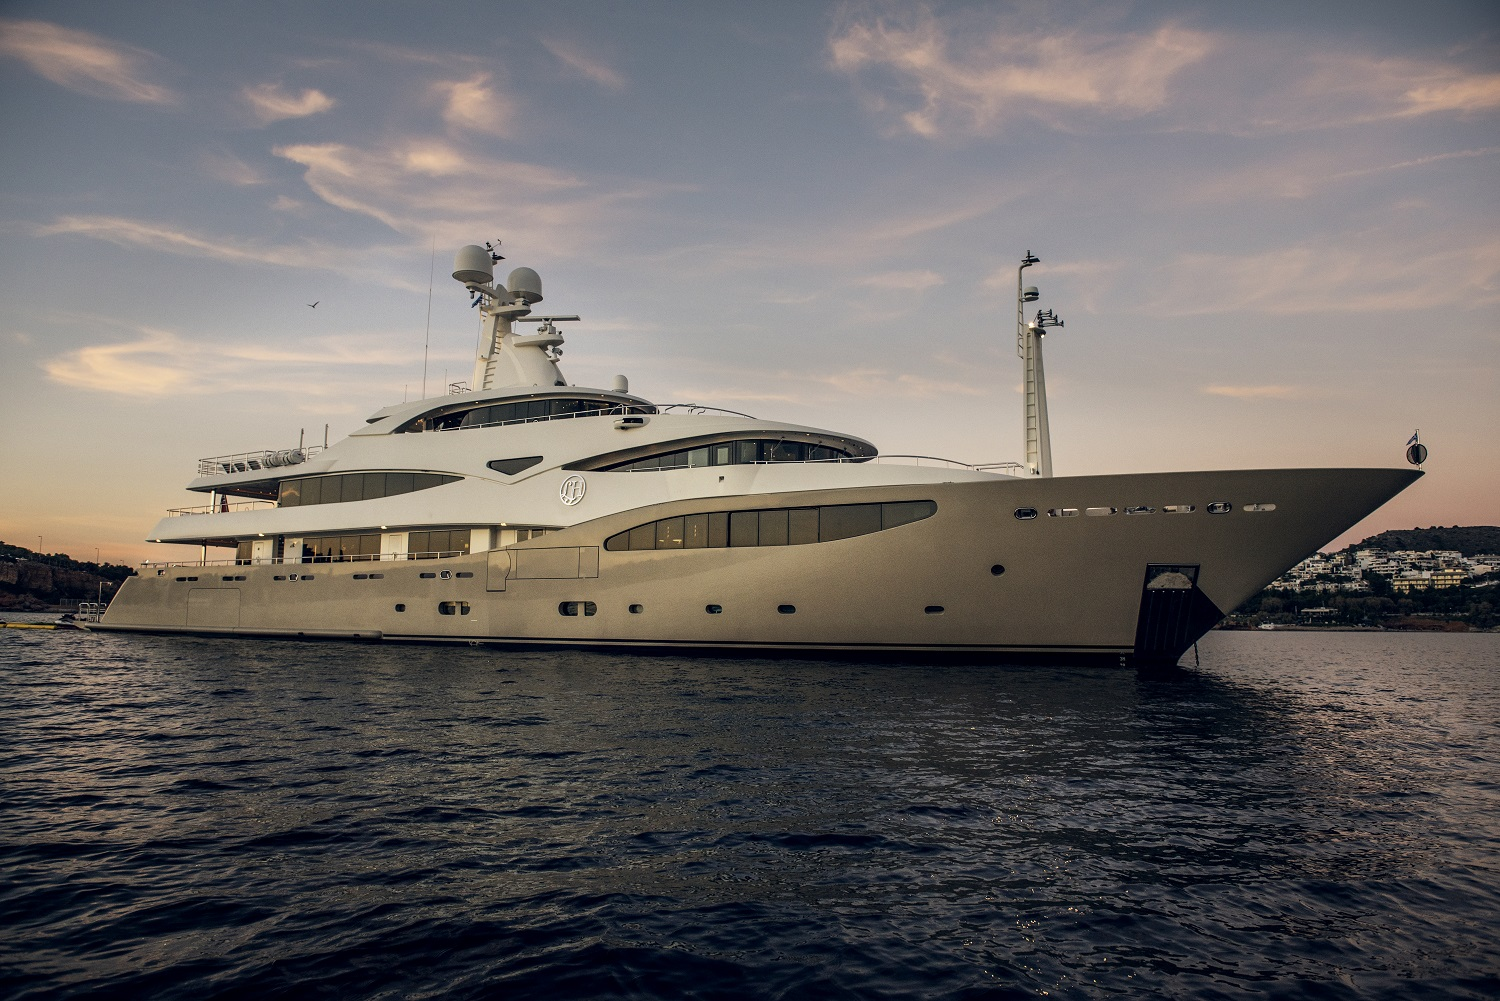 LIGHT HOLIC - Mega Yacht for Charter in Greece